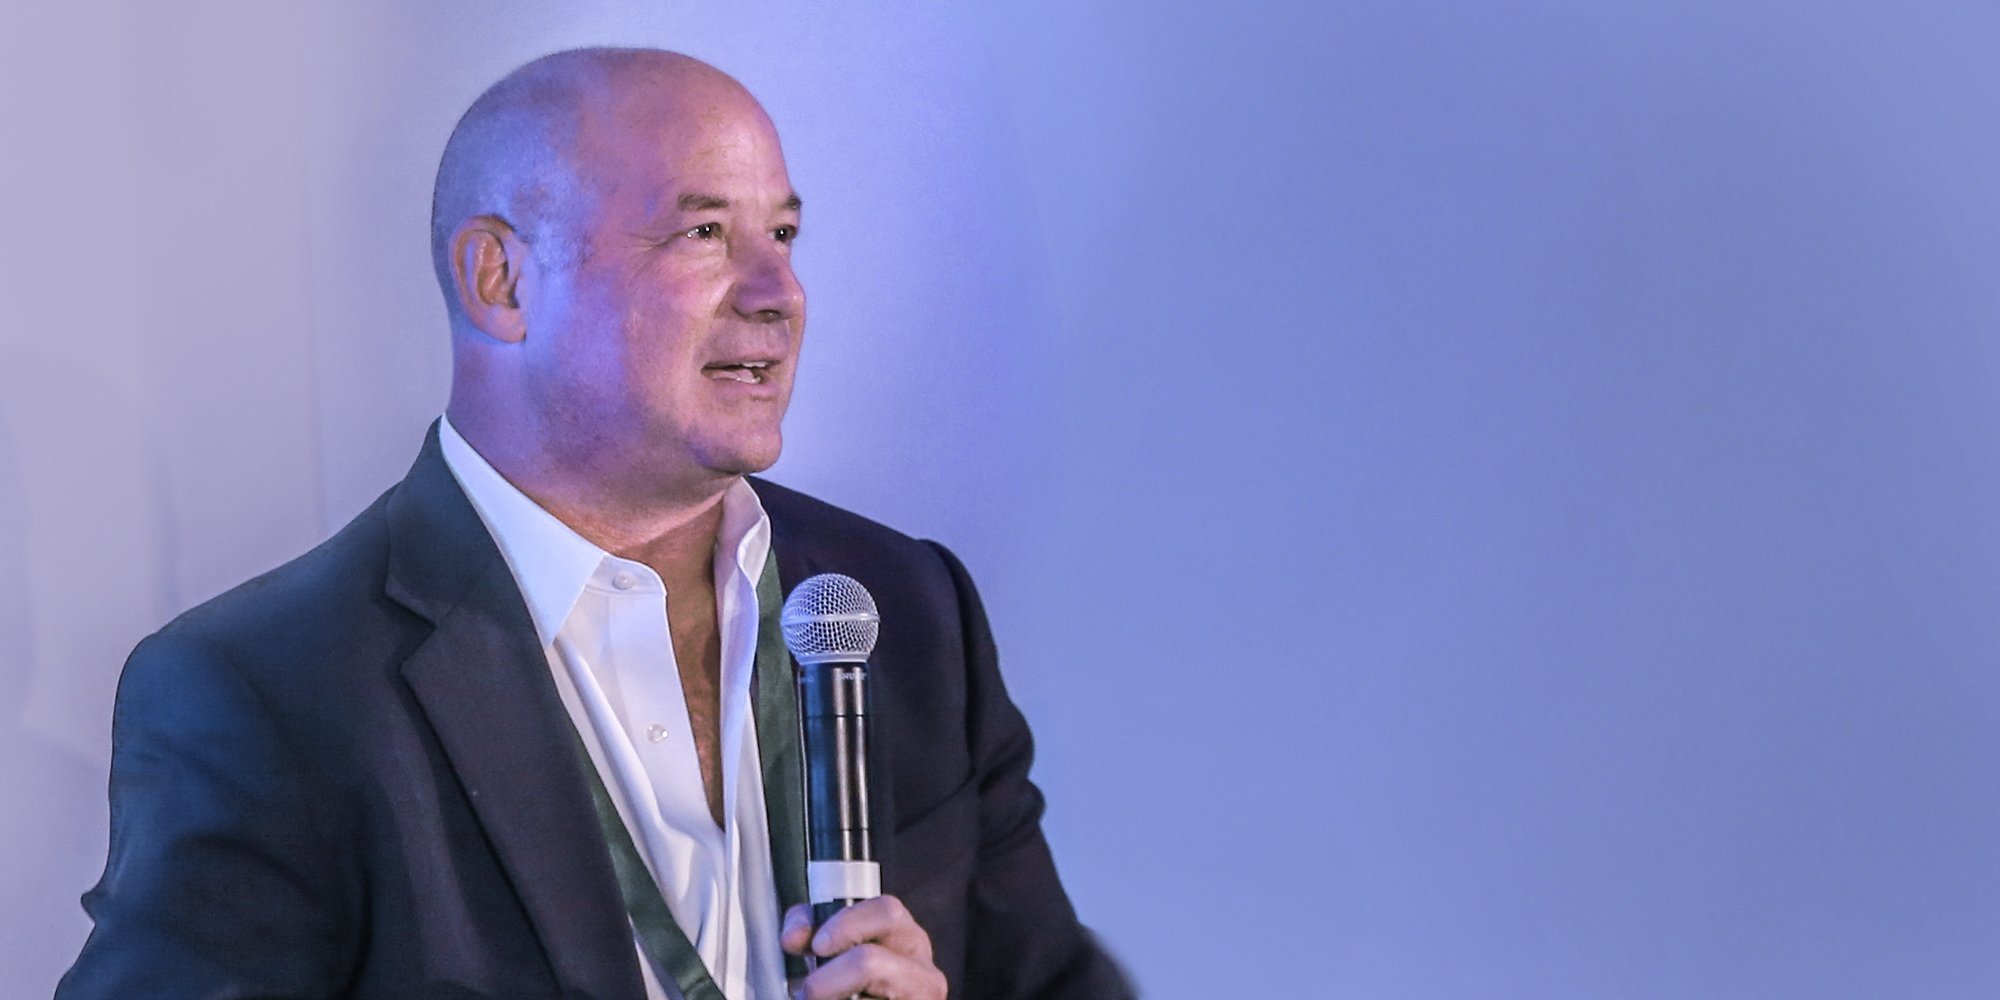 Rich Gersten On His New Firm True Beauty Capital And Finding Investment Opportunities In A Challenging Time